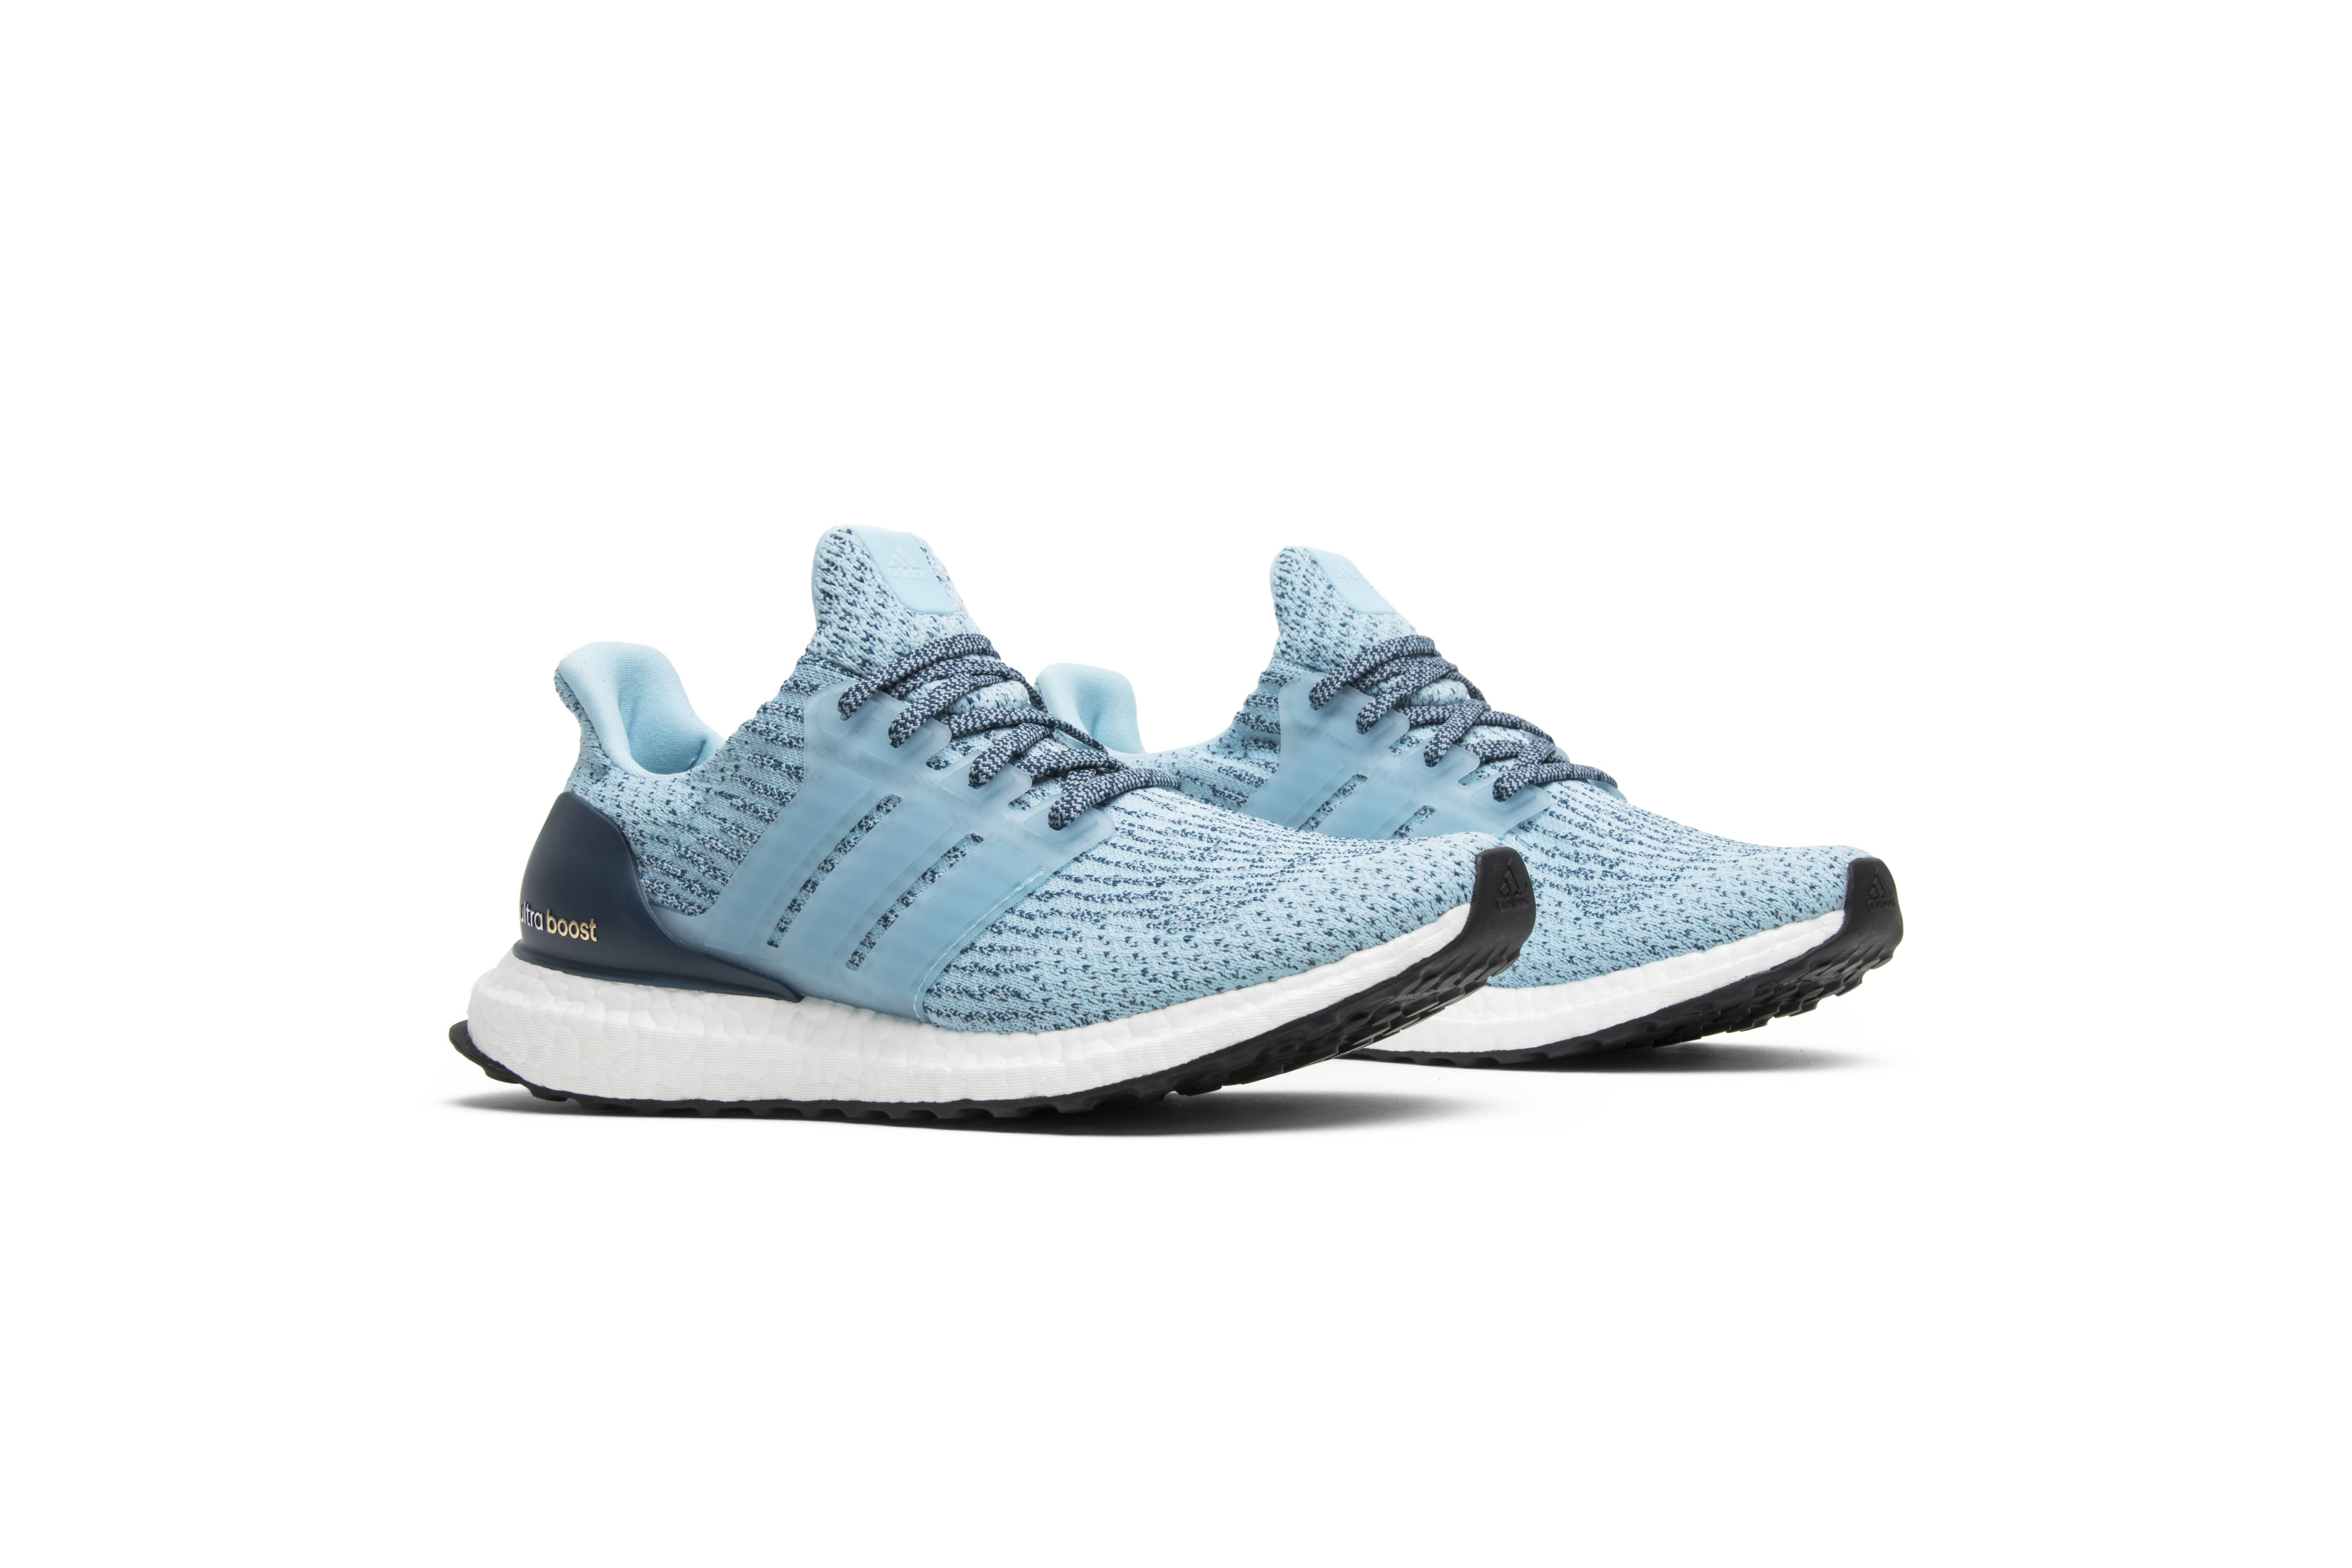 00014b176 ... adidas ac8116 goat c03a8 4379d wholesale wmns edgebounce grey adidas  ac8116 goat c03a8 4379d  sale if you didnt dig any of the 11 colorways  unveiled ...